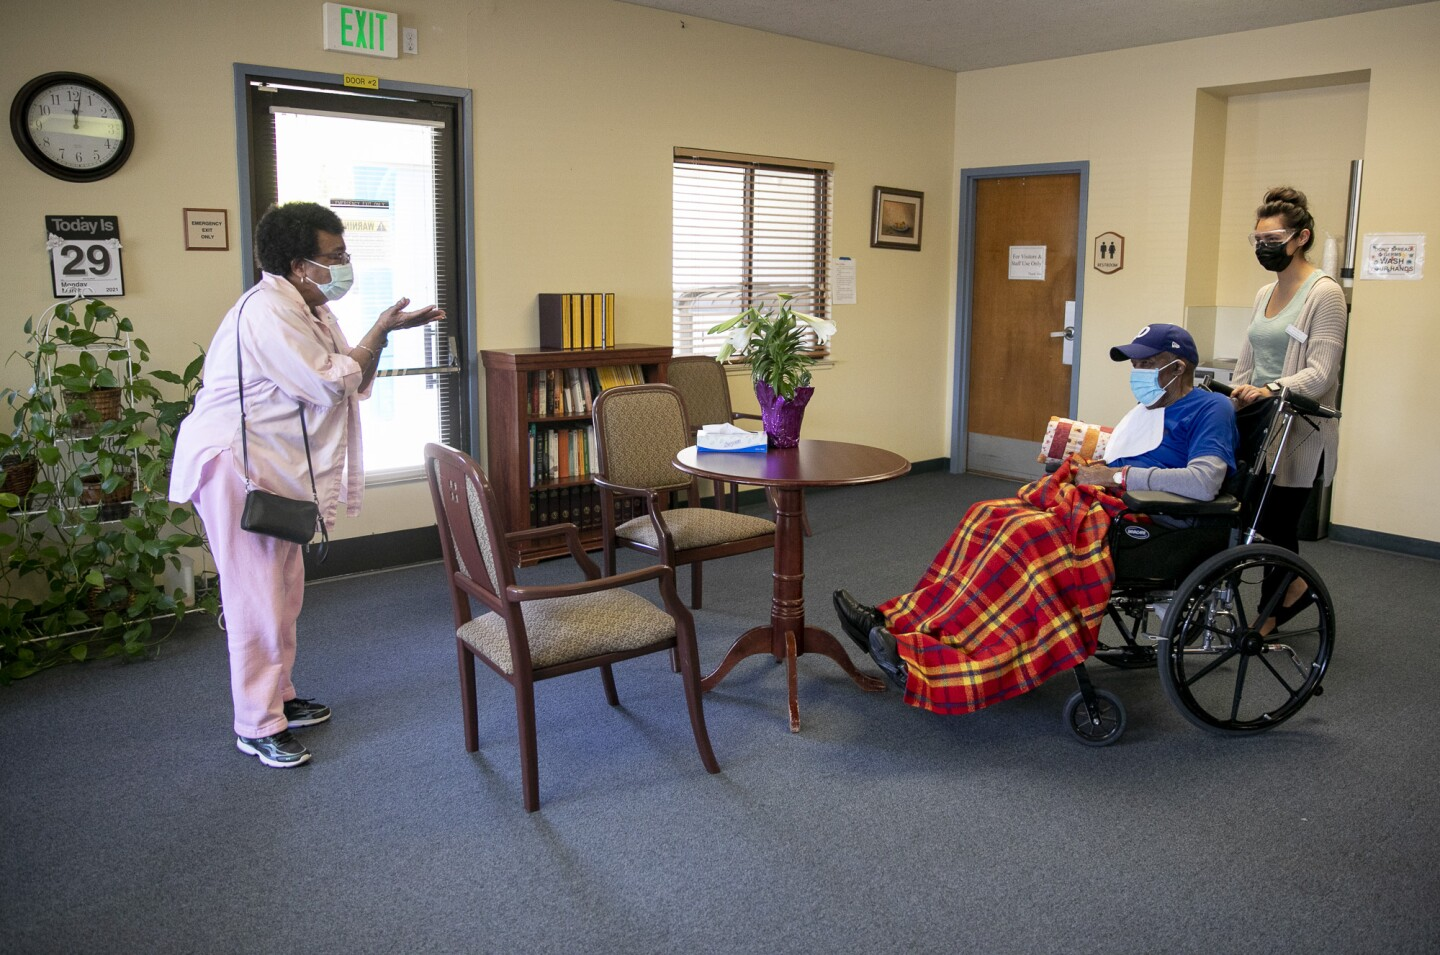 Ouida Dill, left, blows a kiss to her husband David at the end of their near-daily visit at Lincoln Glen Skilled Nursing Facility on March 29, 2021 in San Jose, California.